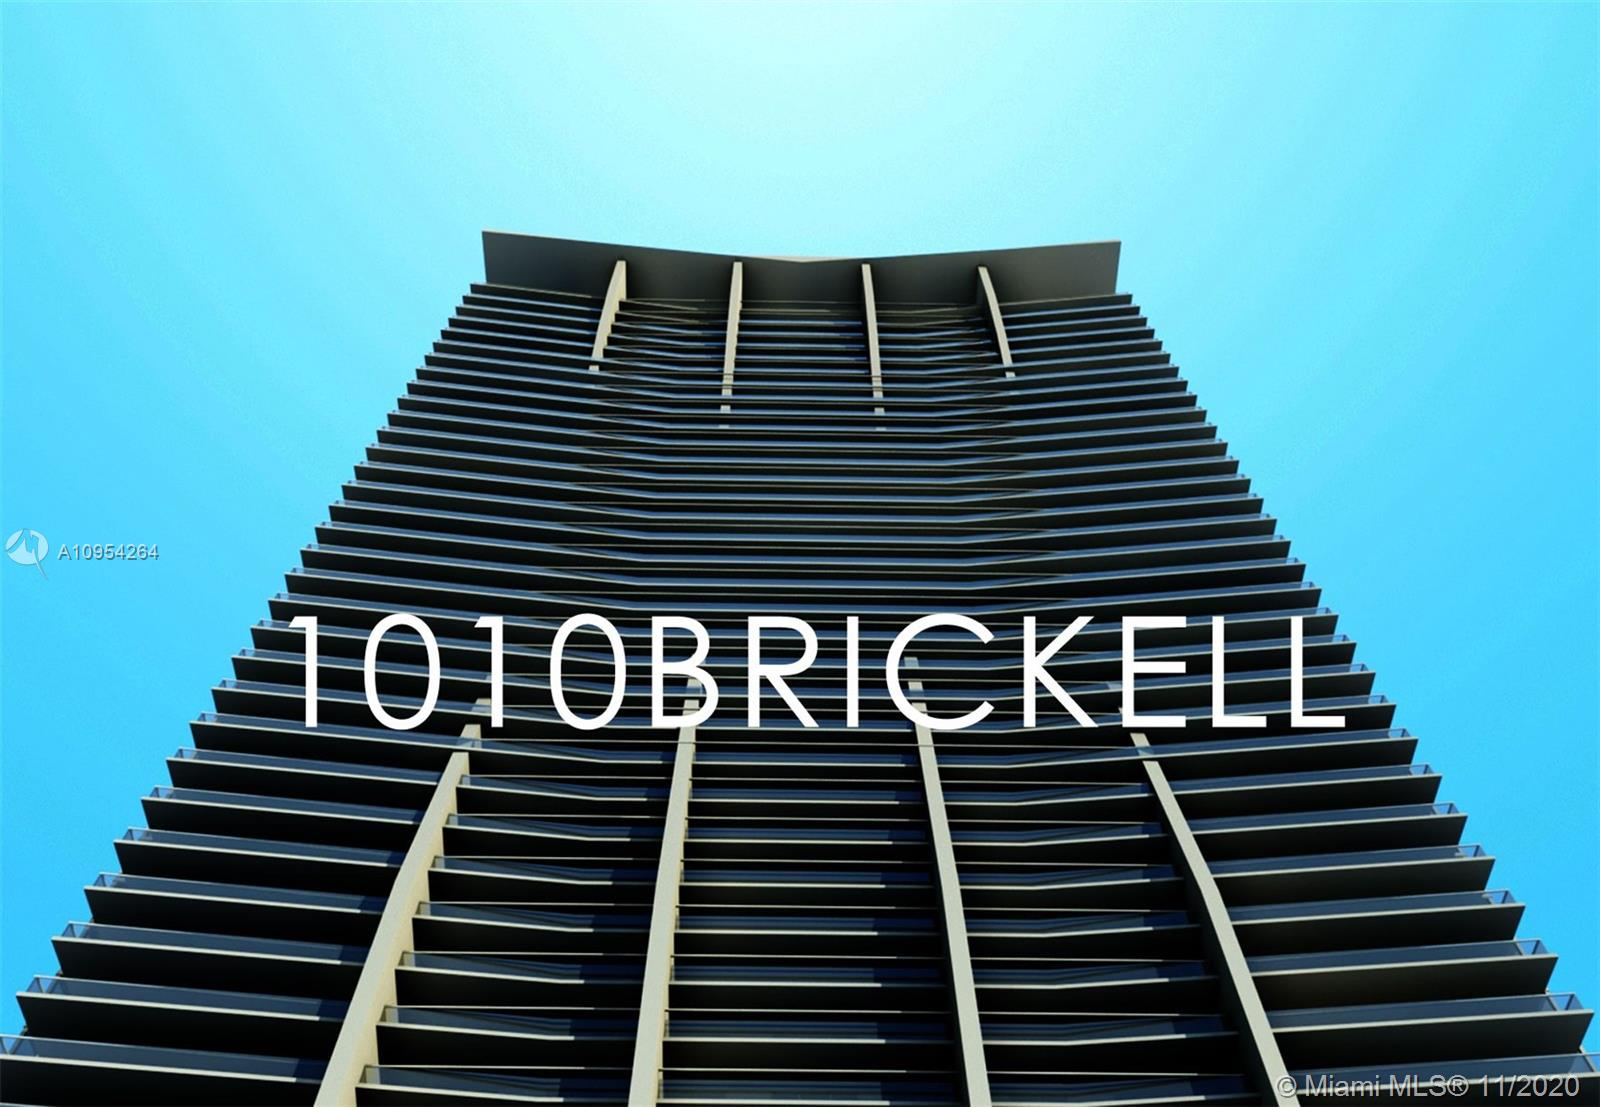 Spectacular building in the heart of Brickell. Multiple amenities including Basket Ball, two swimming pools, running circuit, gym, children's room, game room, billiards, BBQ's. The unit has white calacatta porcelain floors, high-end appliances, balcony overlooking the city, and comes freshly painted.